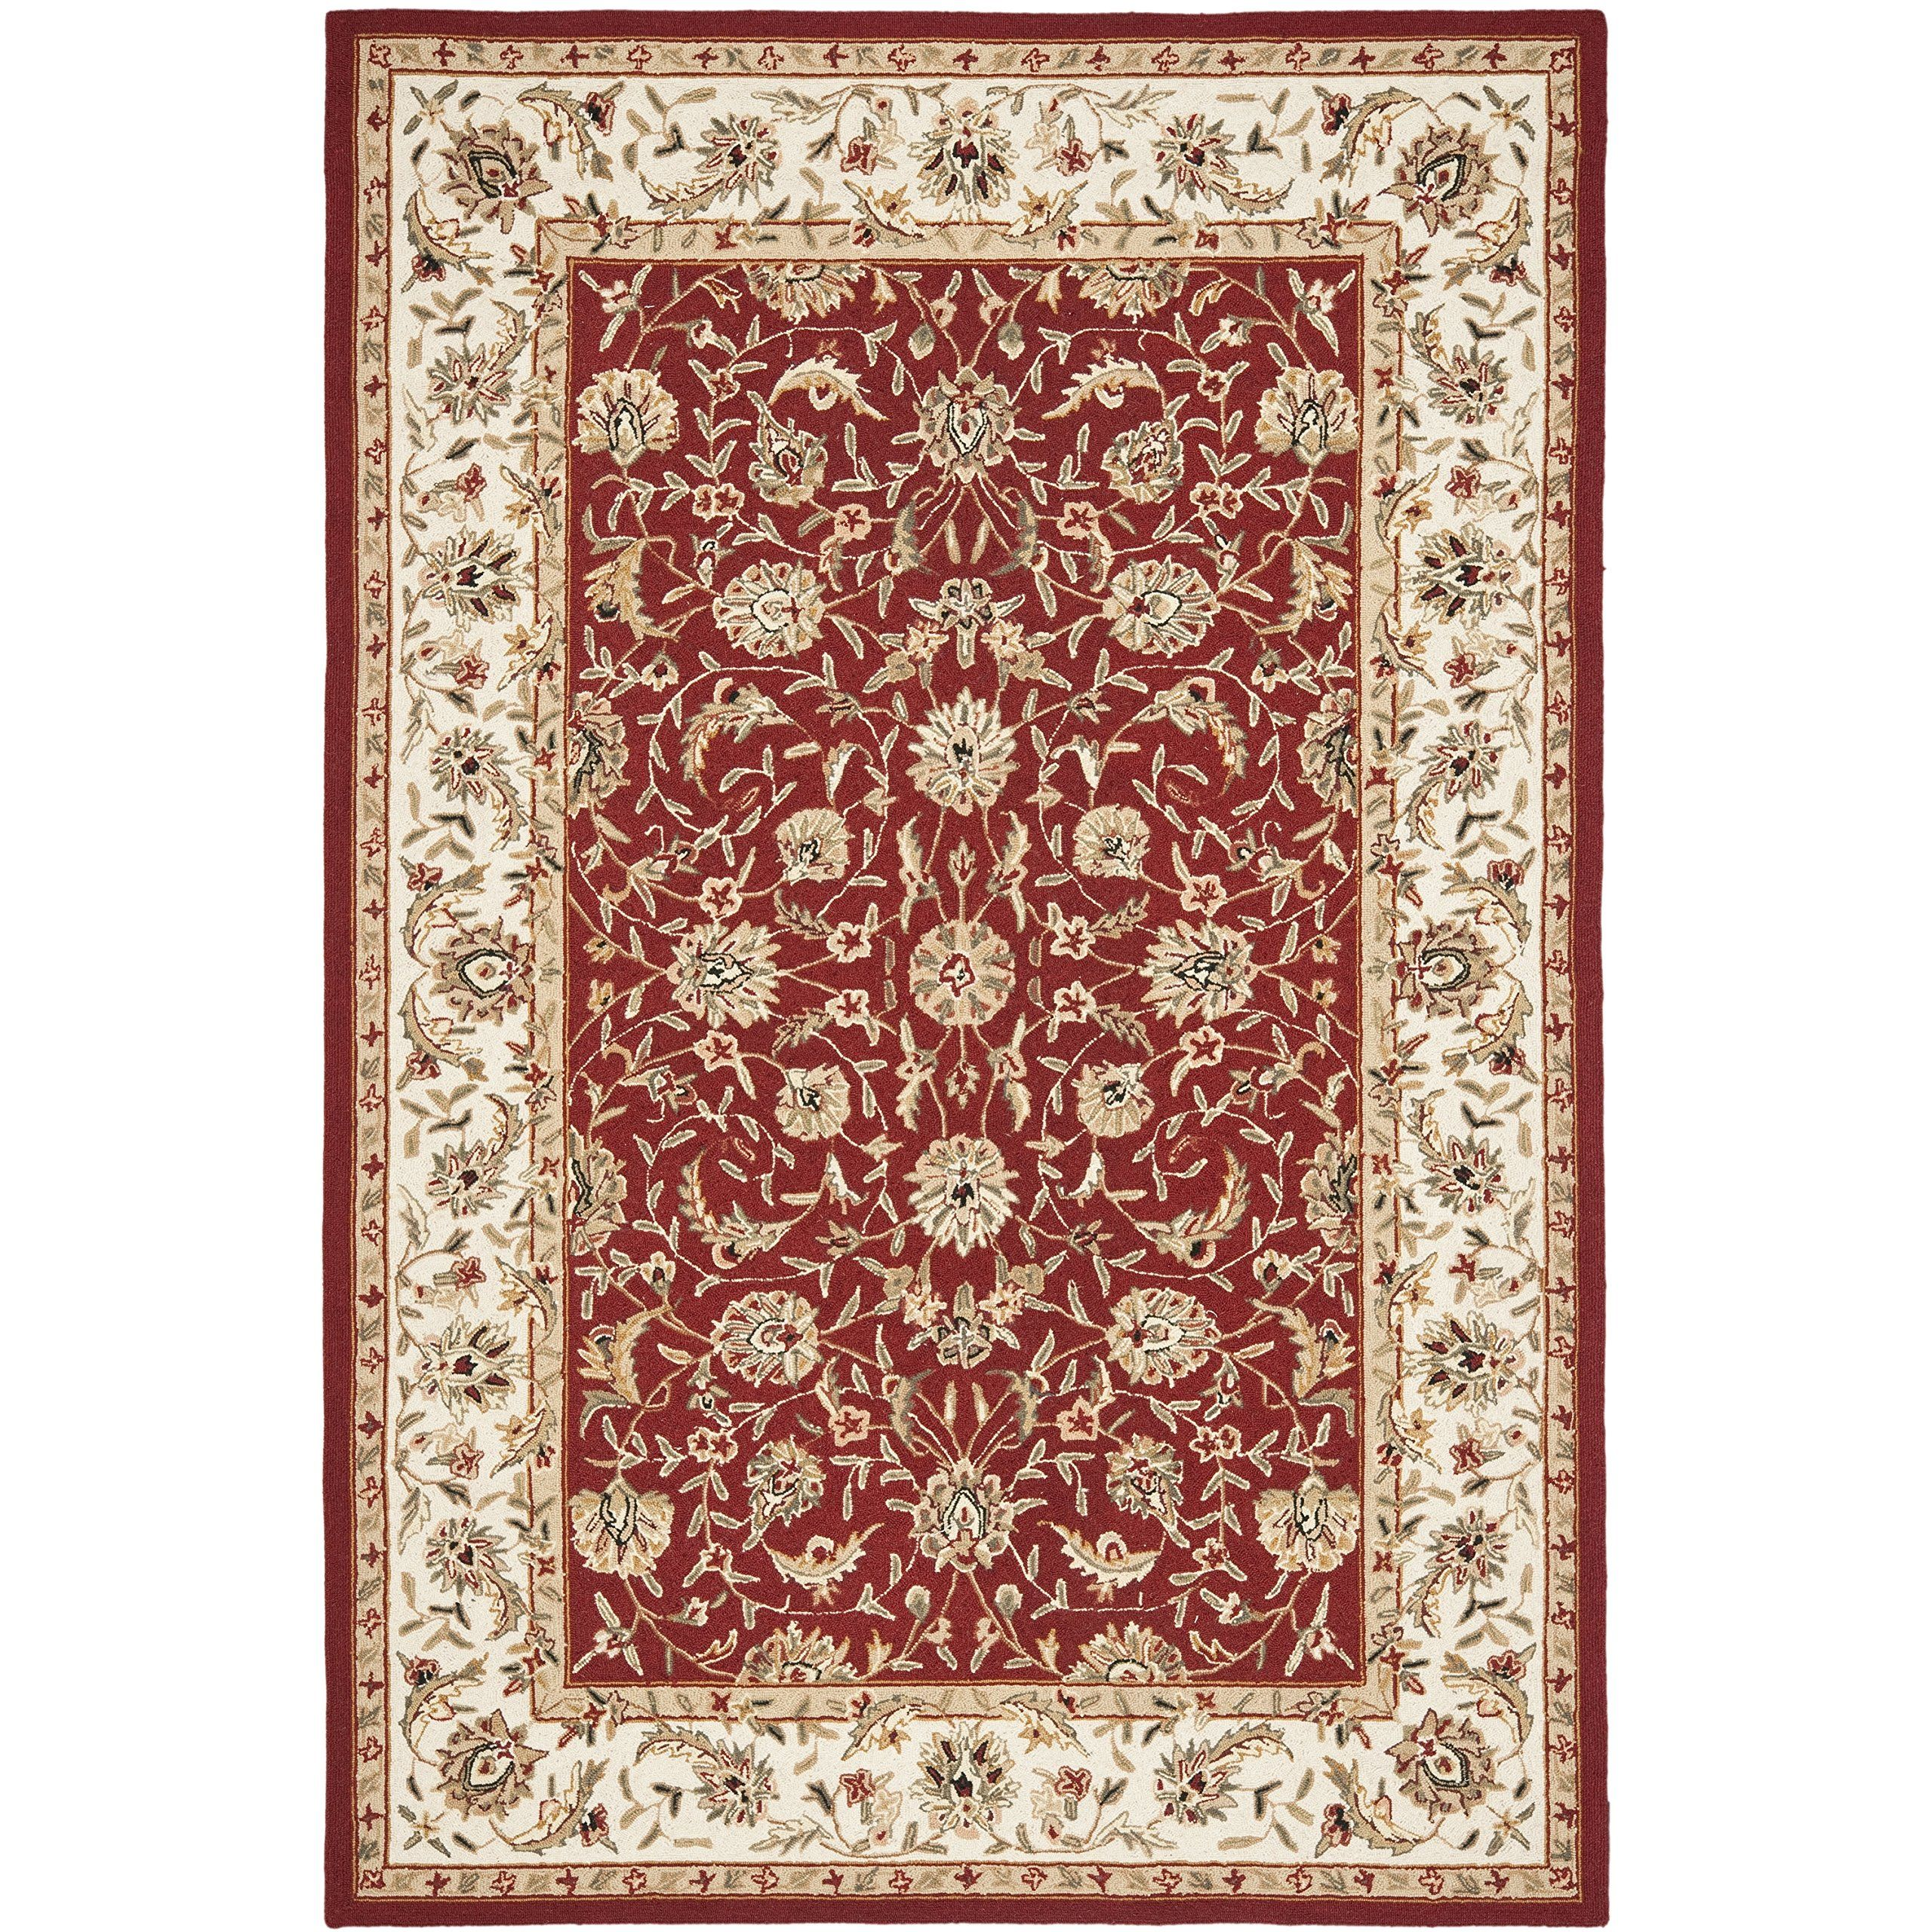 Safavieh Chelsea Collection Hk78b Hand Hooked Burgundy And Ivory Premium Wool Area Rug 6